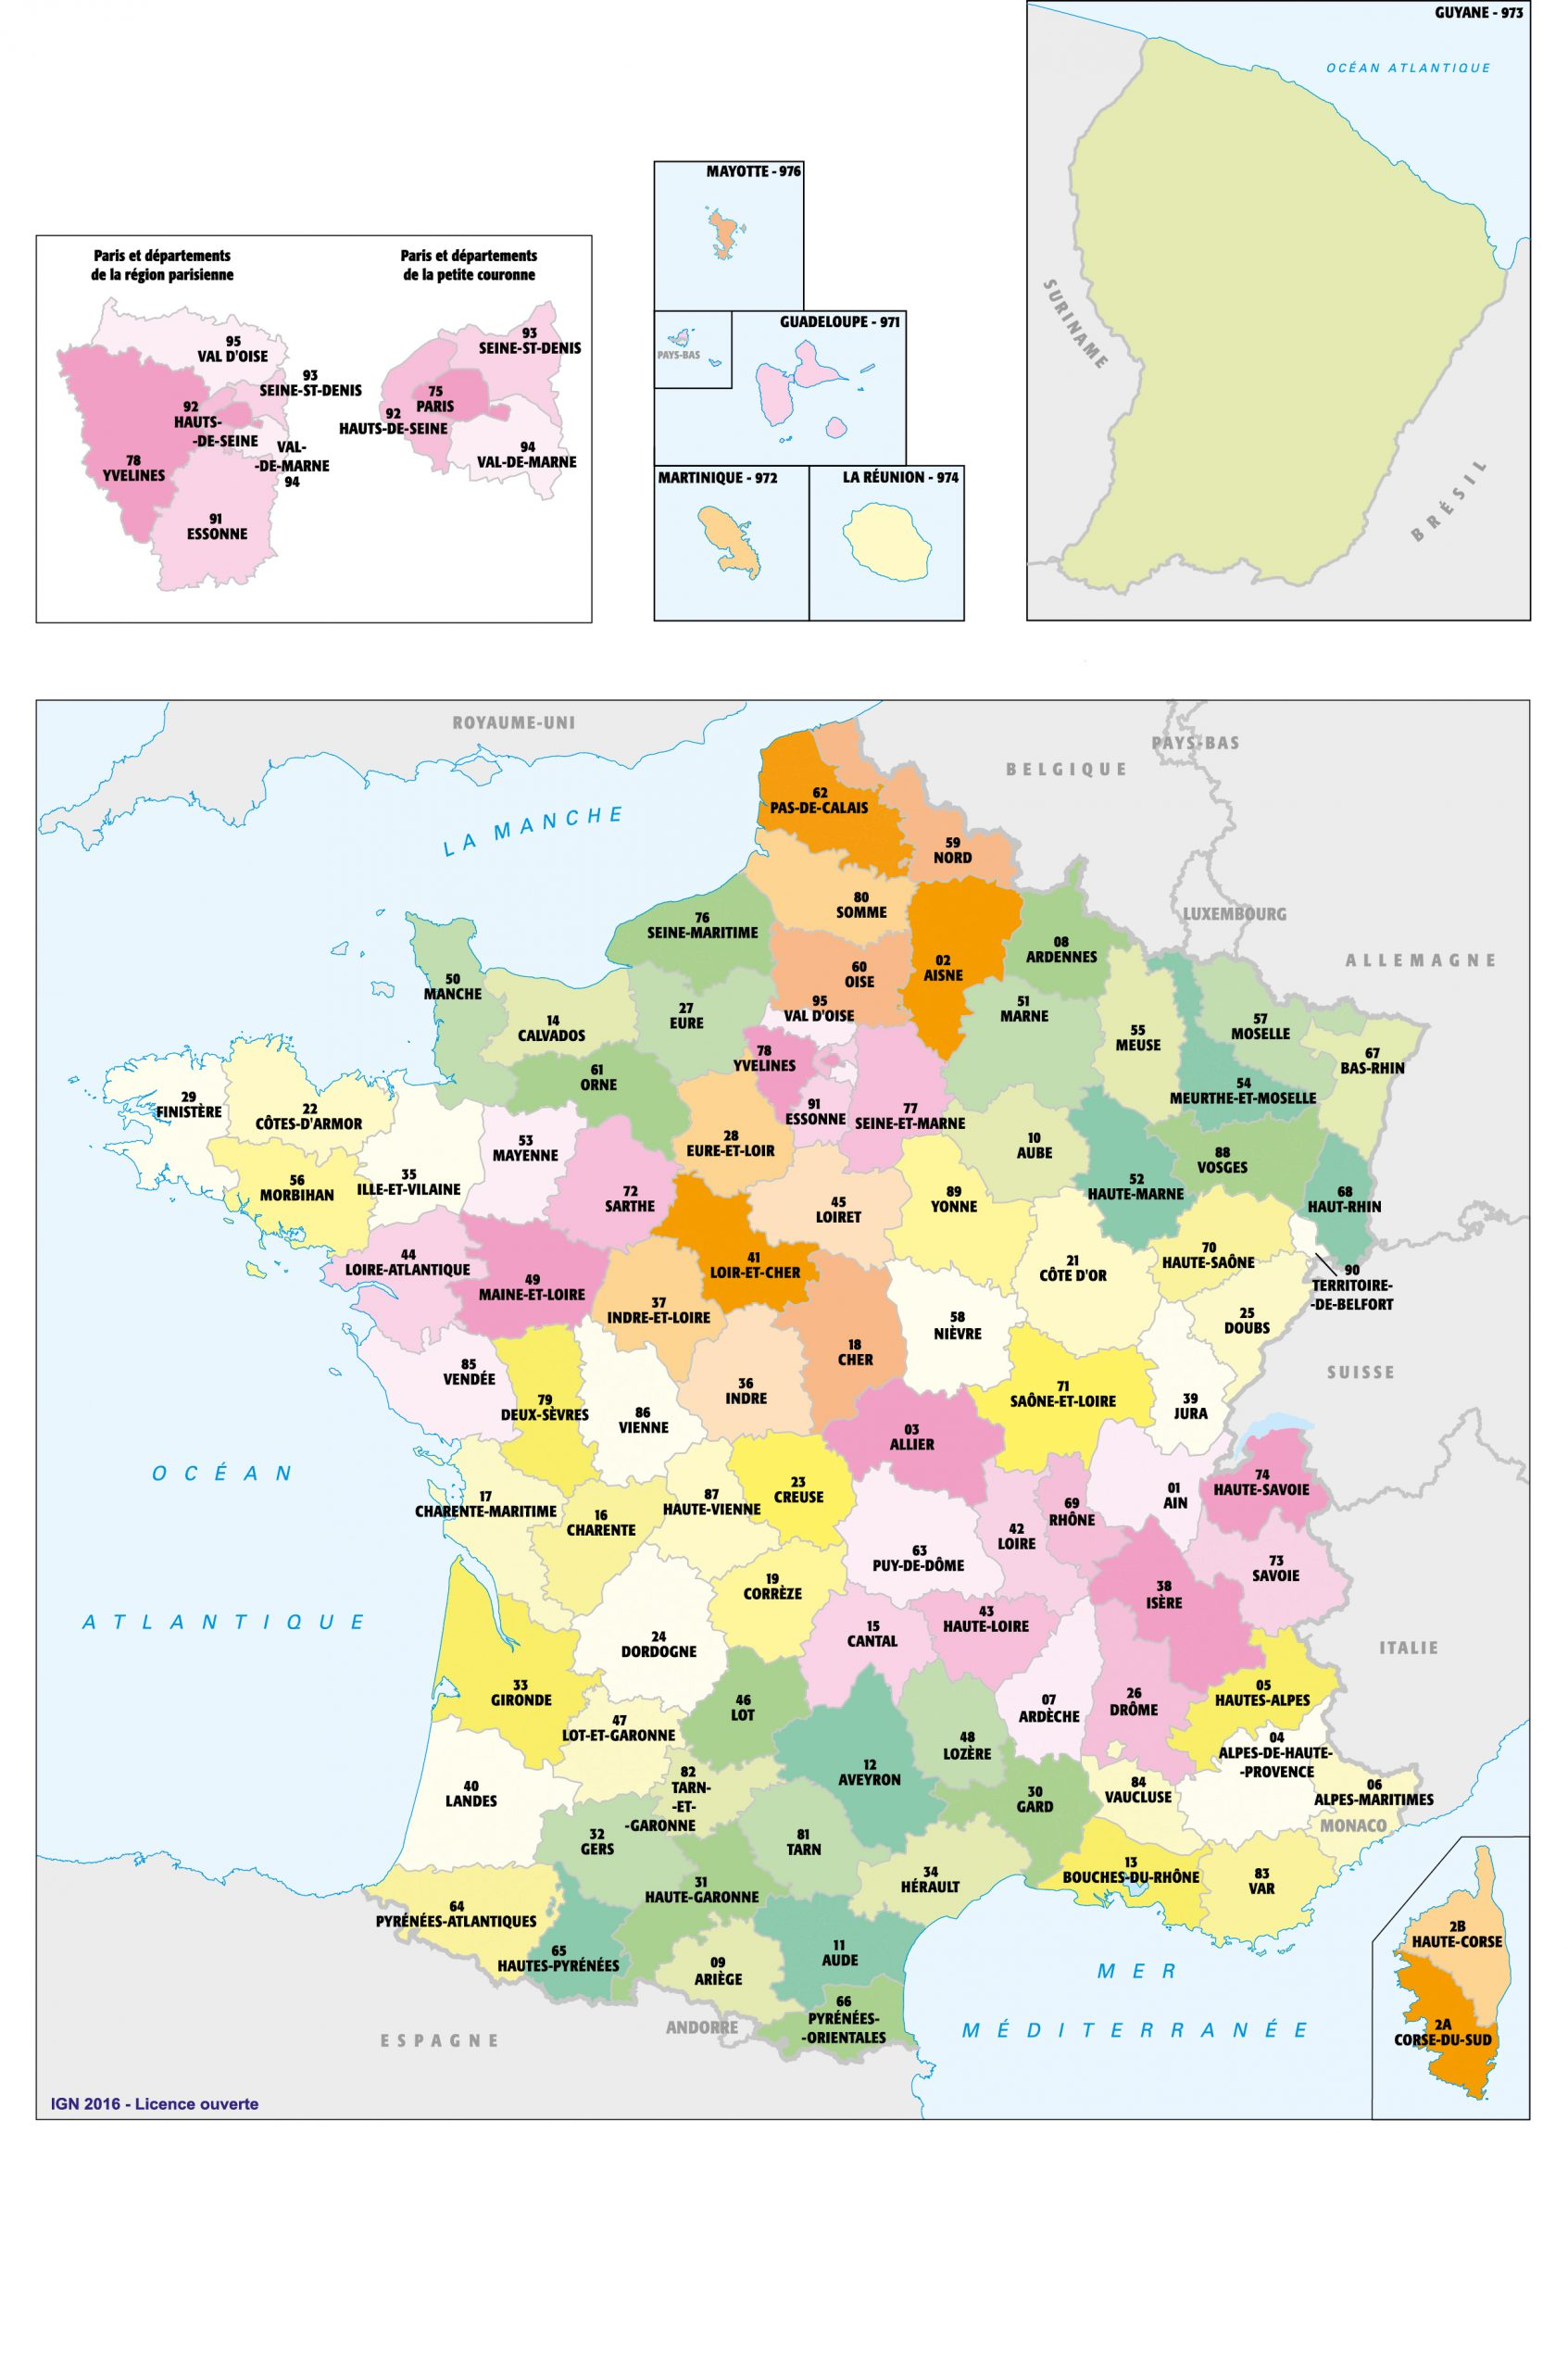 Fonds De Cartes | Éducation avec Carte De France Avec Region